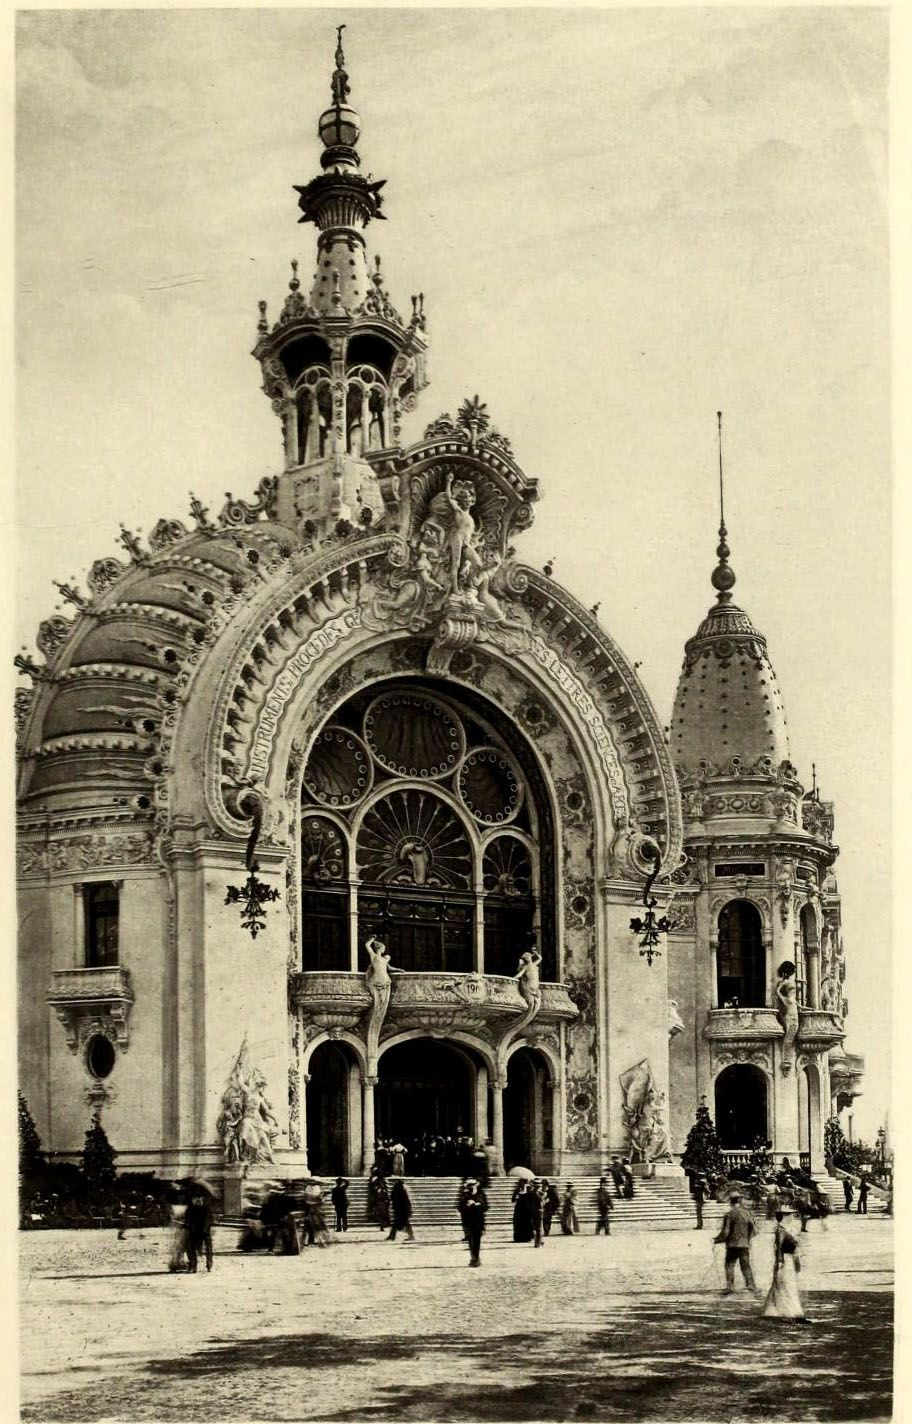 The Palace of Sciences, Arts and Lettersat the Exposition Universelle in 1900, Paris